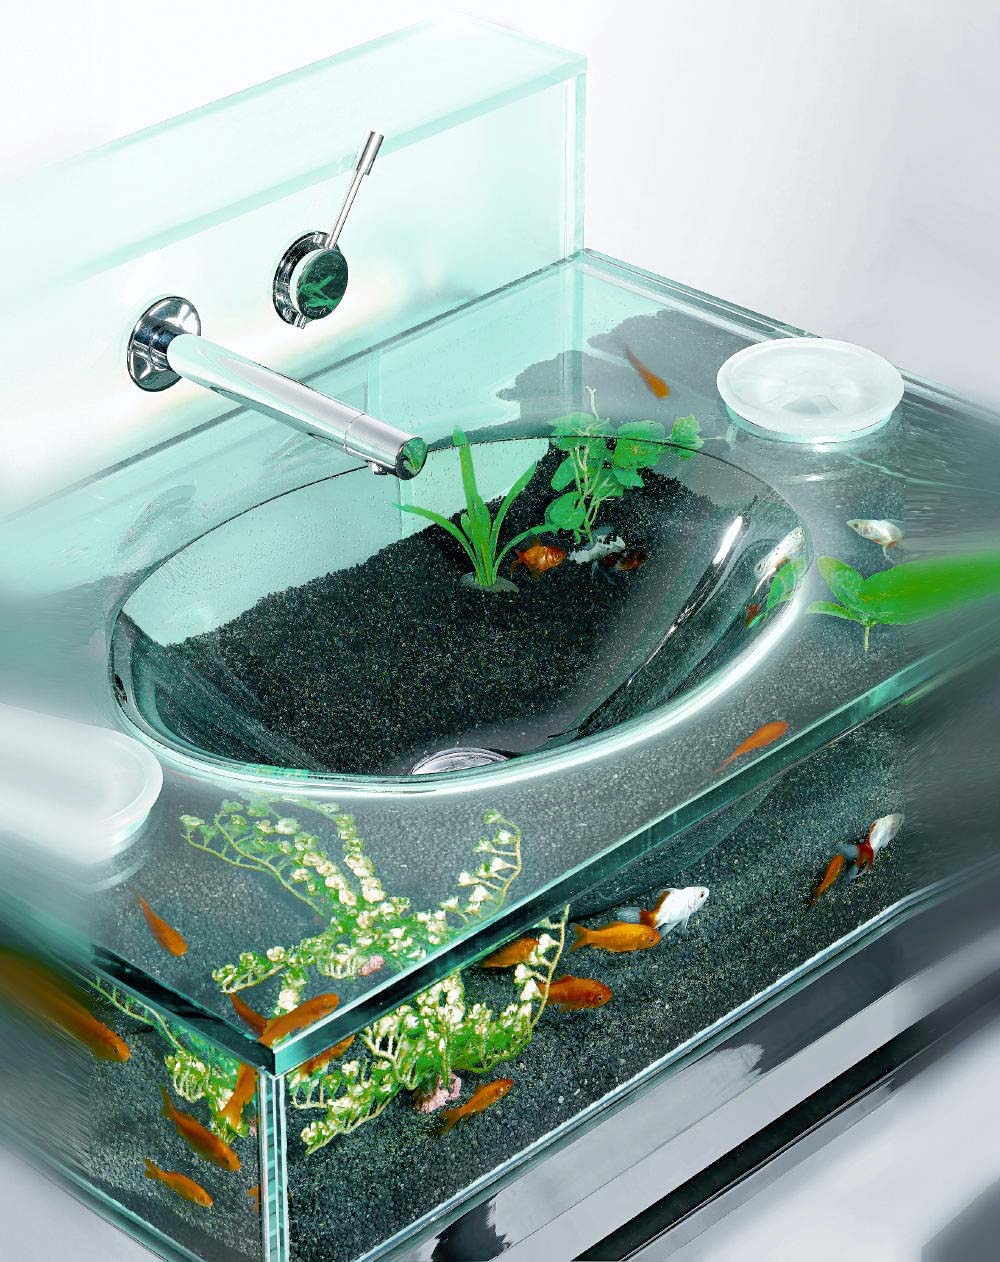 Cool fish tank images pictures becuo - Pictures of cool fish tanks ...